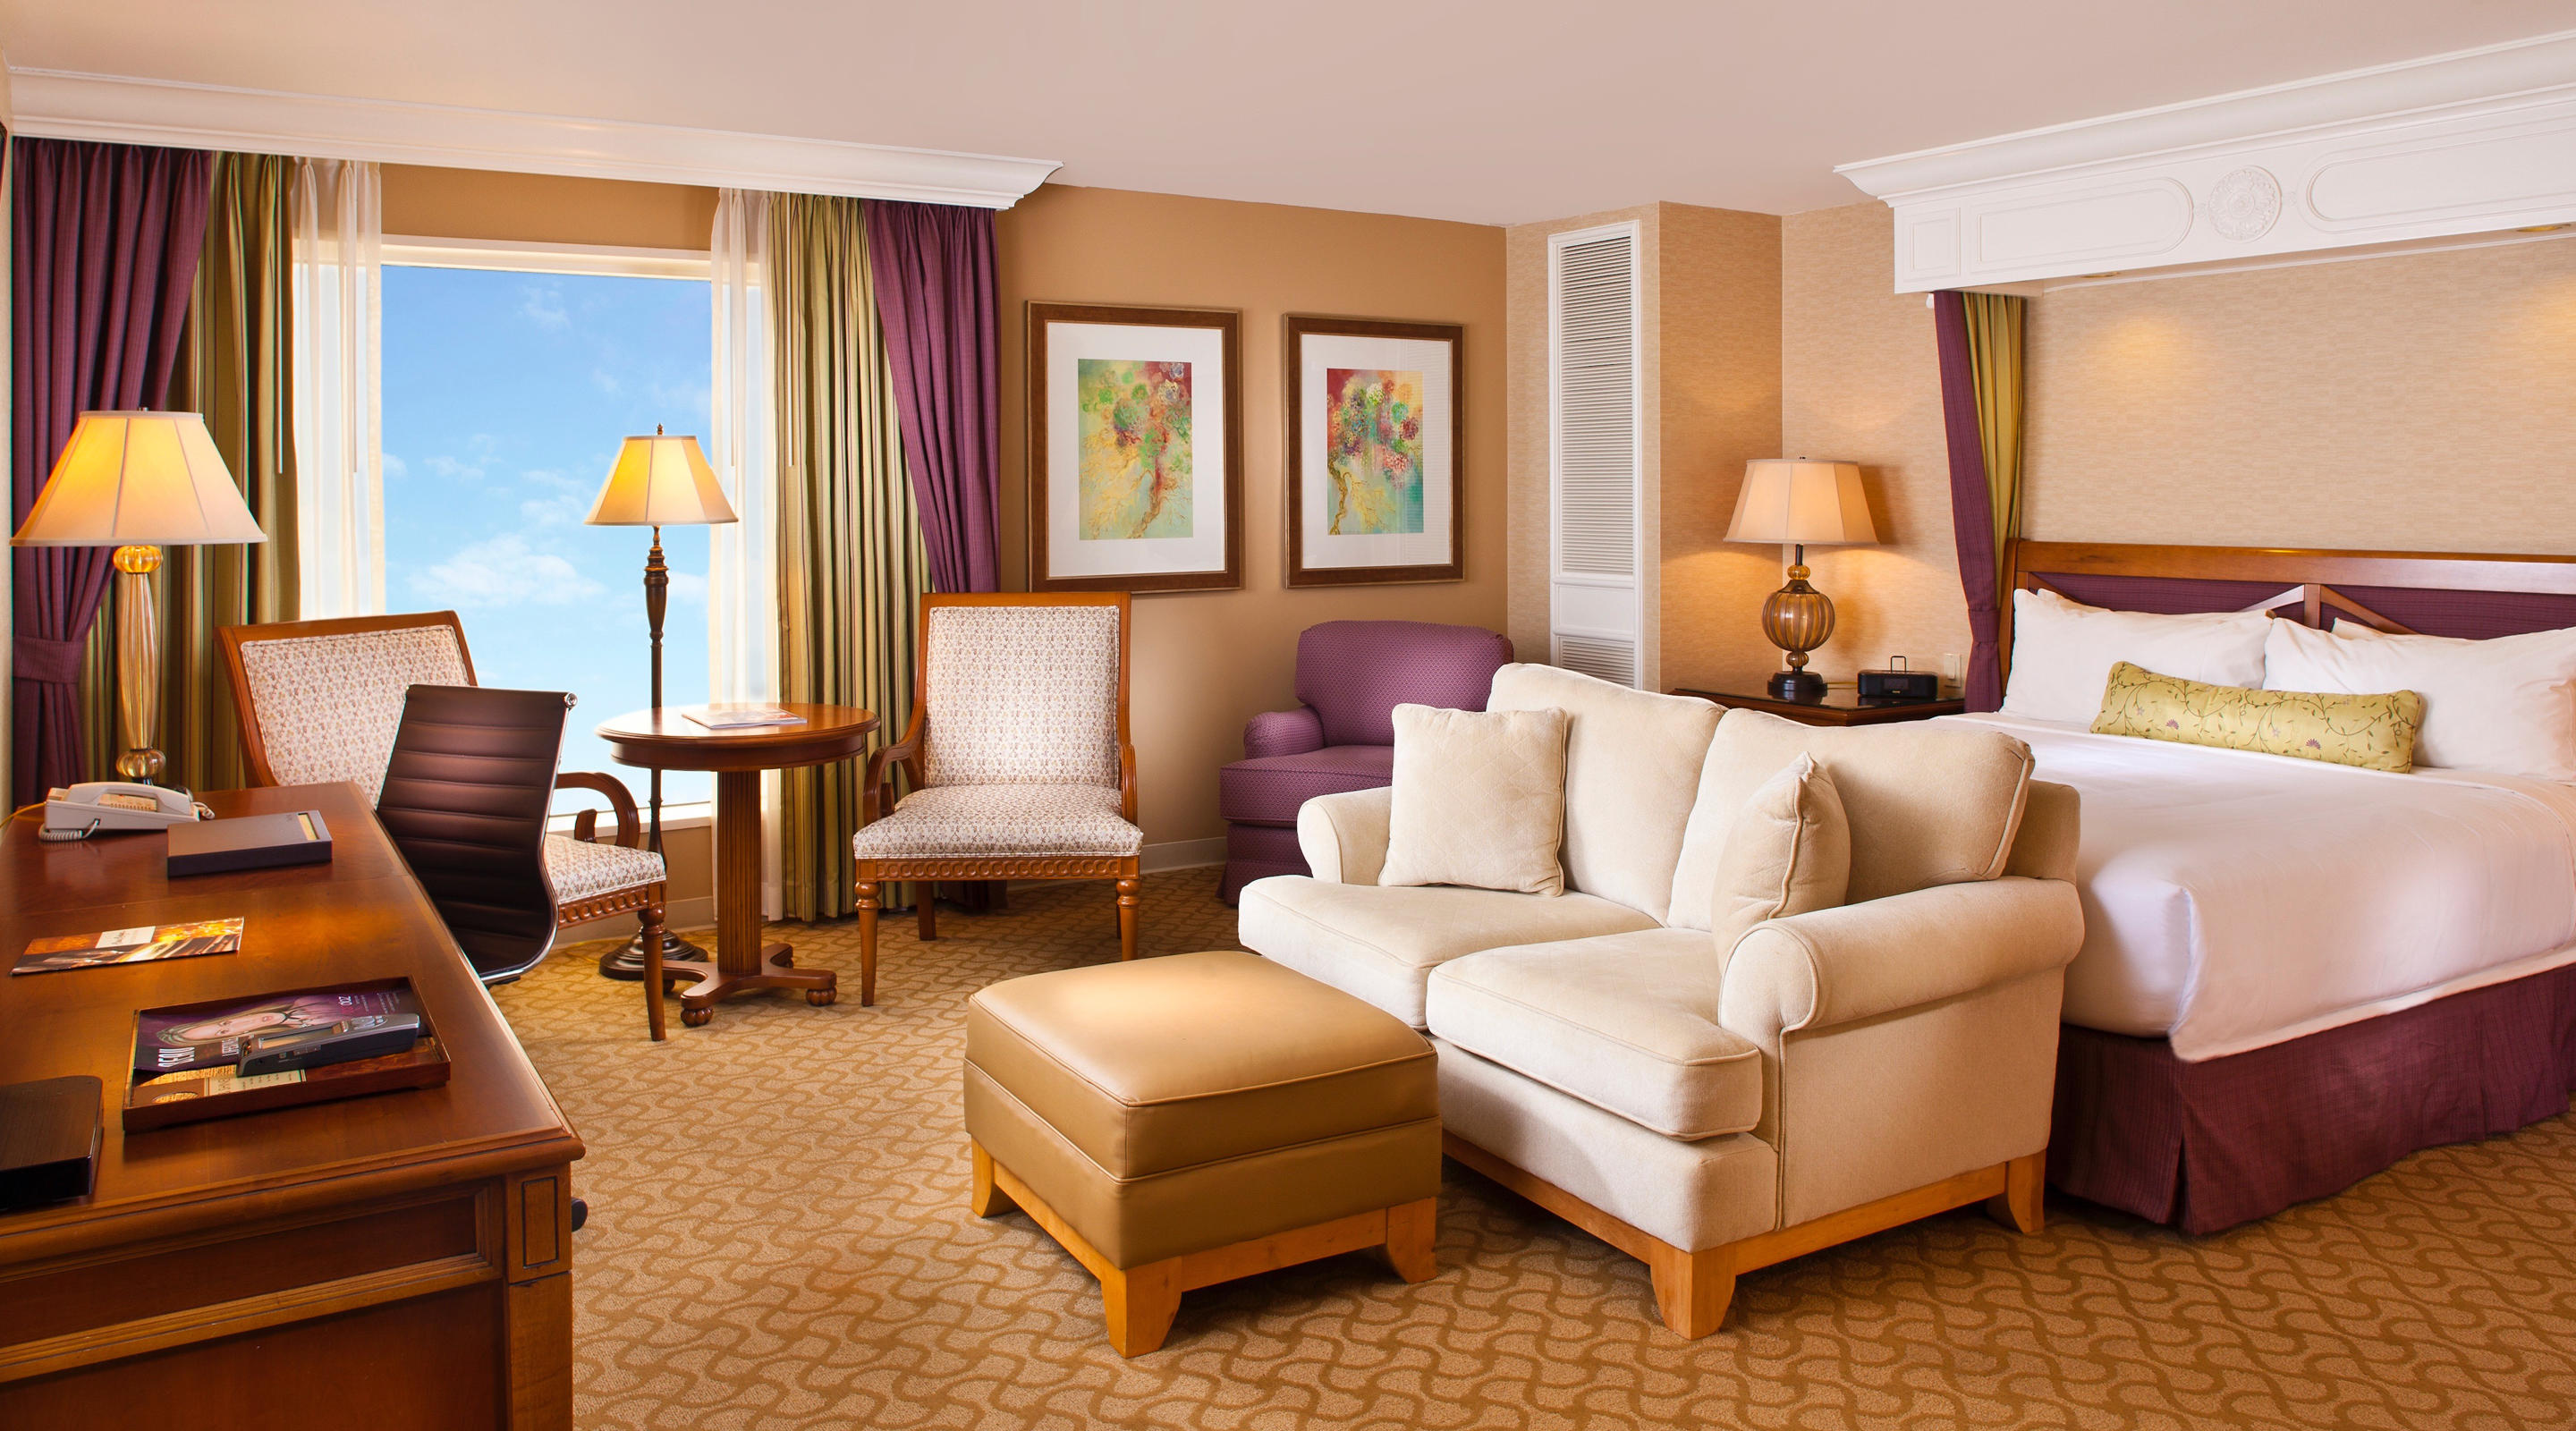 Compliment your King-sized vacation with equally spacious accommodations.